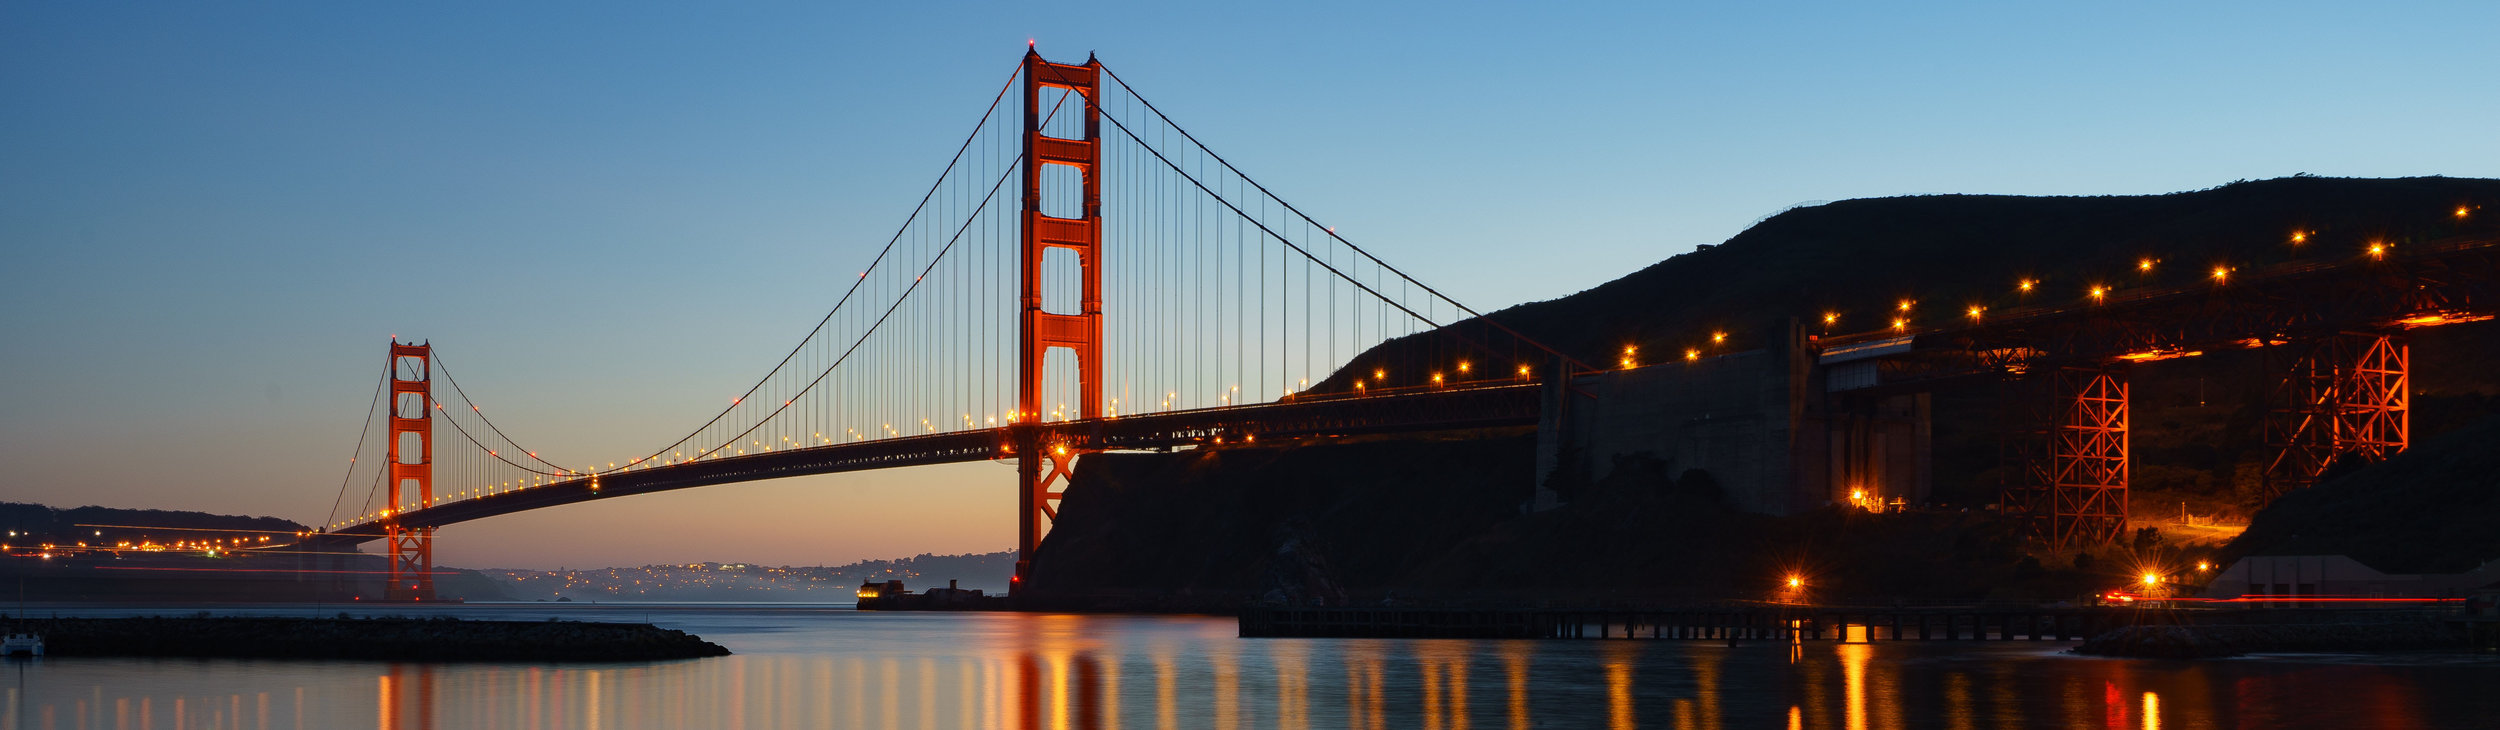 Register Now - 7 Paths to Great Coaching workshopSan Francisco, Nov 1-3